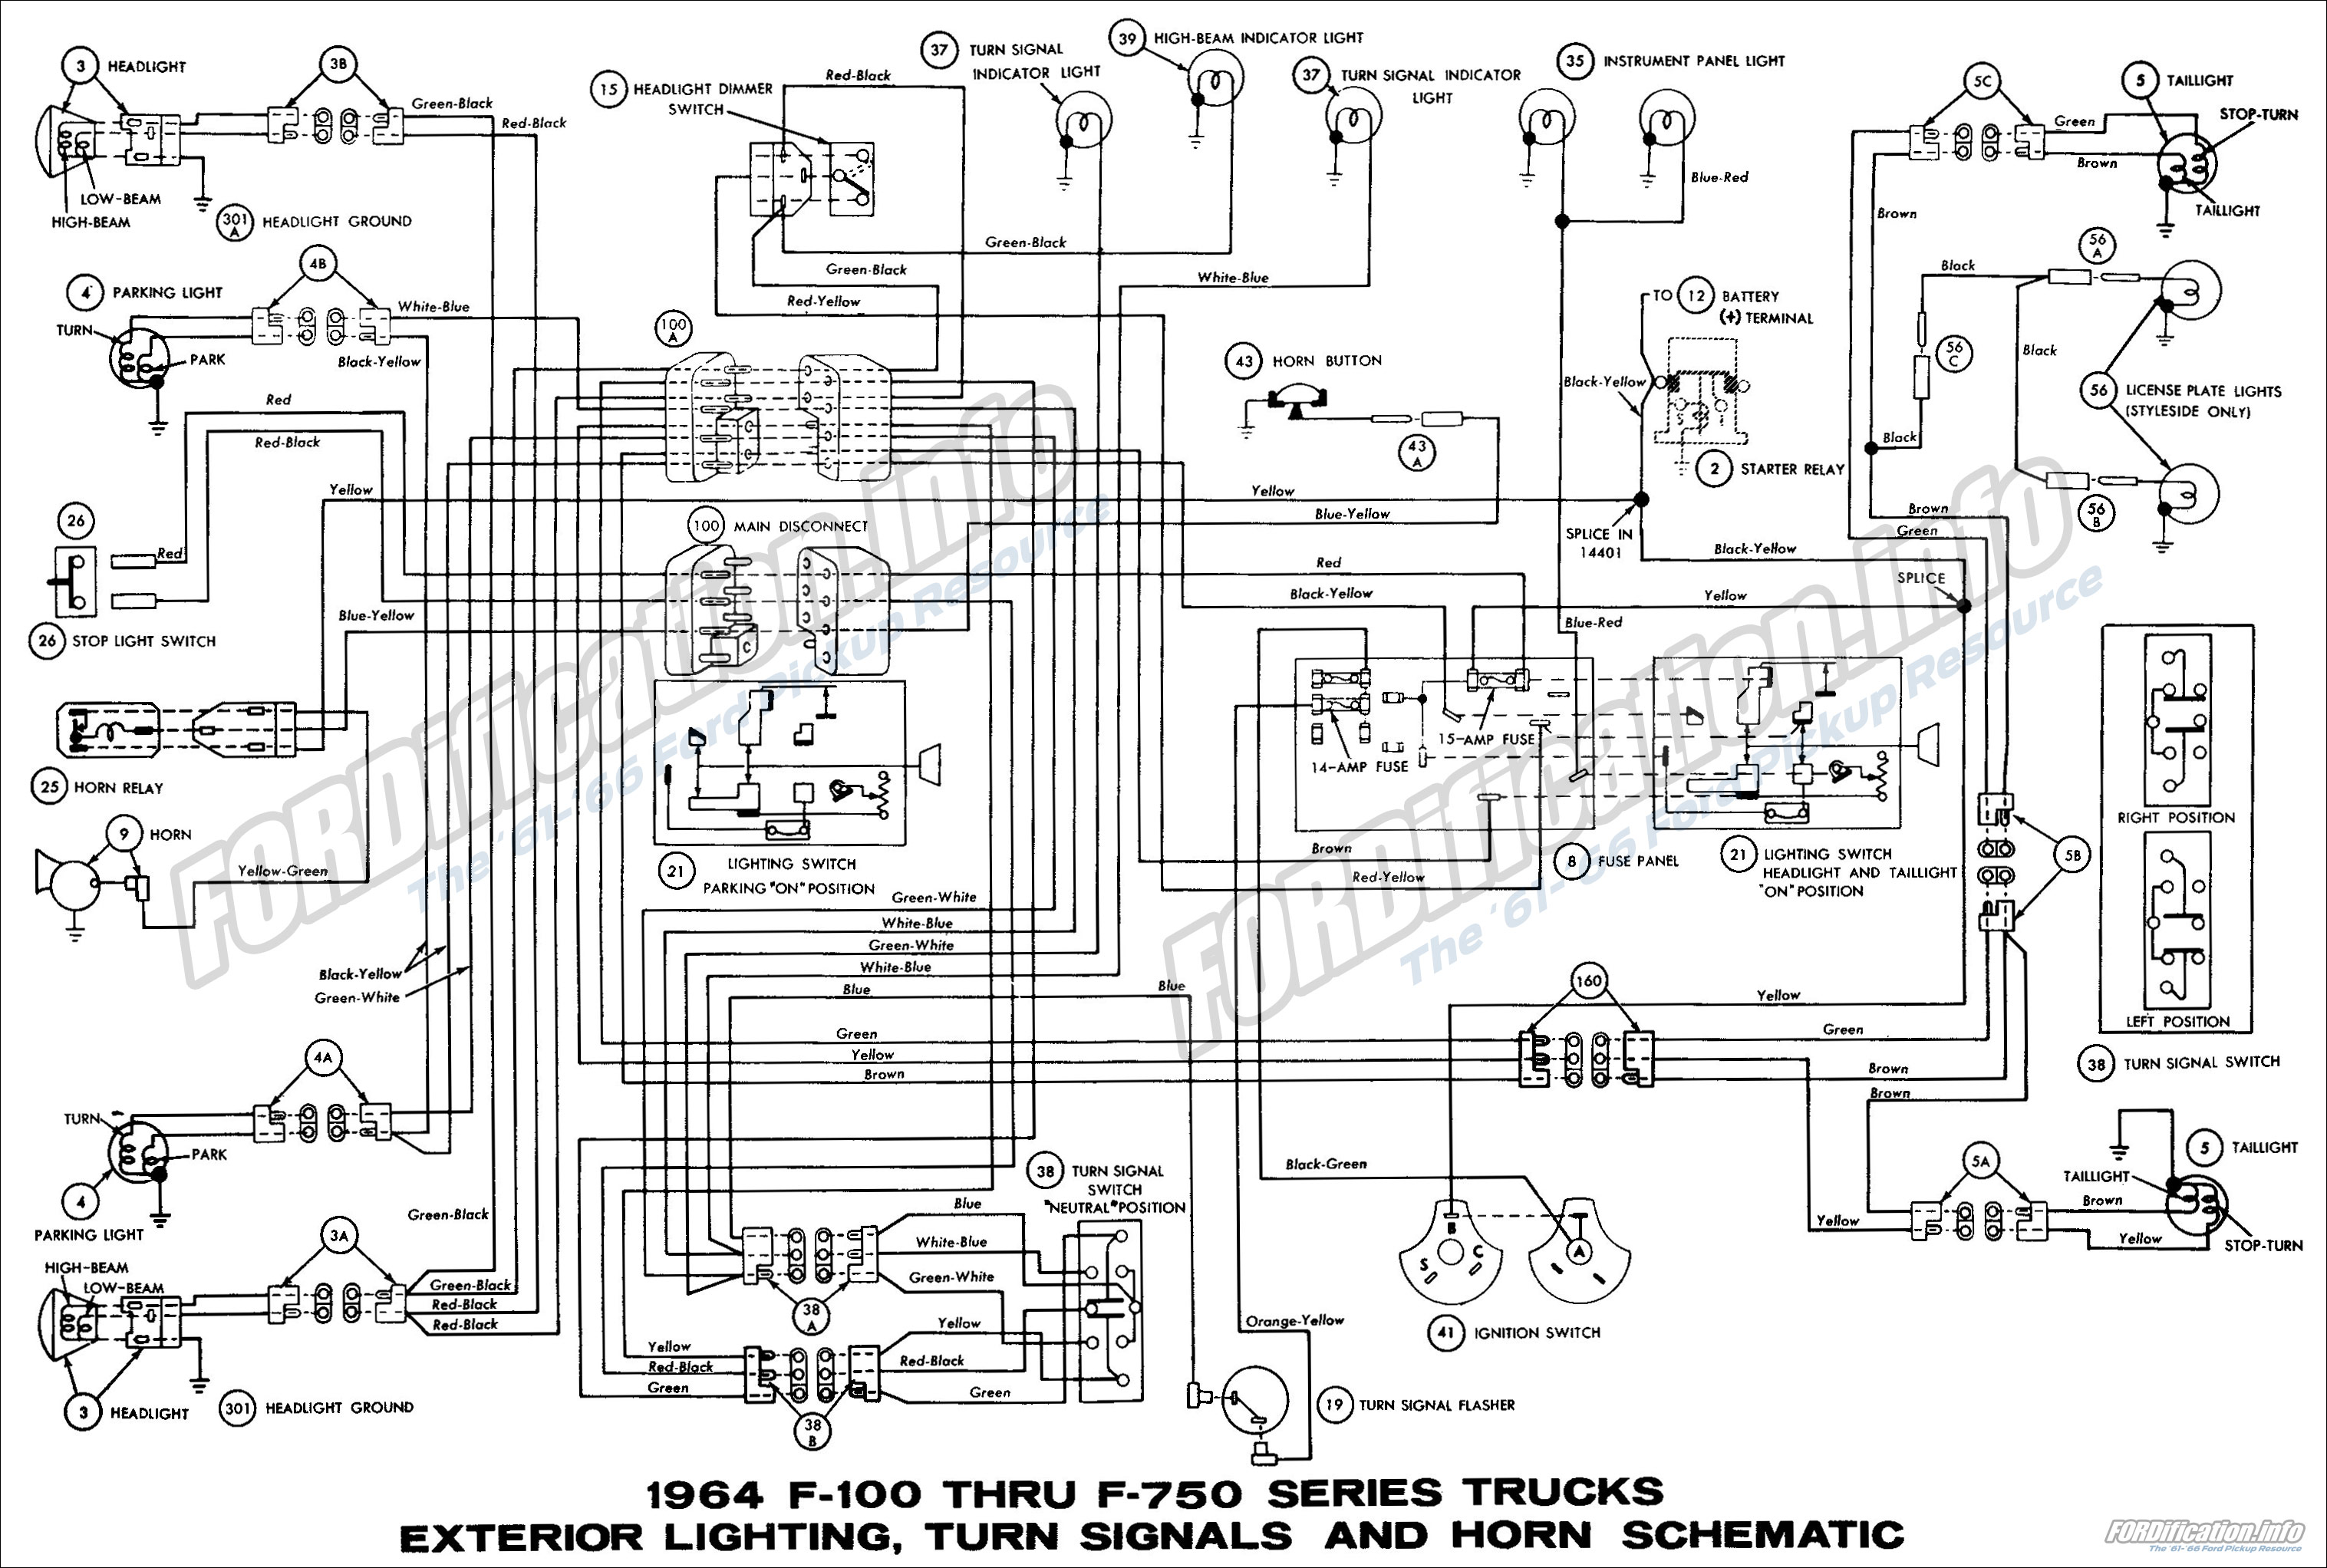 Ford F750 Turn Signal Wiring Diagram Fuse Box 1954 Blinker Switch Wire 1964 Truck Diagrams Fordification Info The 61 66 Rh 2005 F650